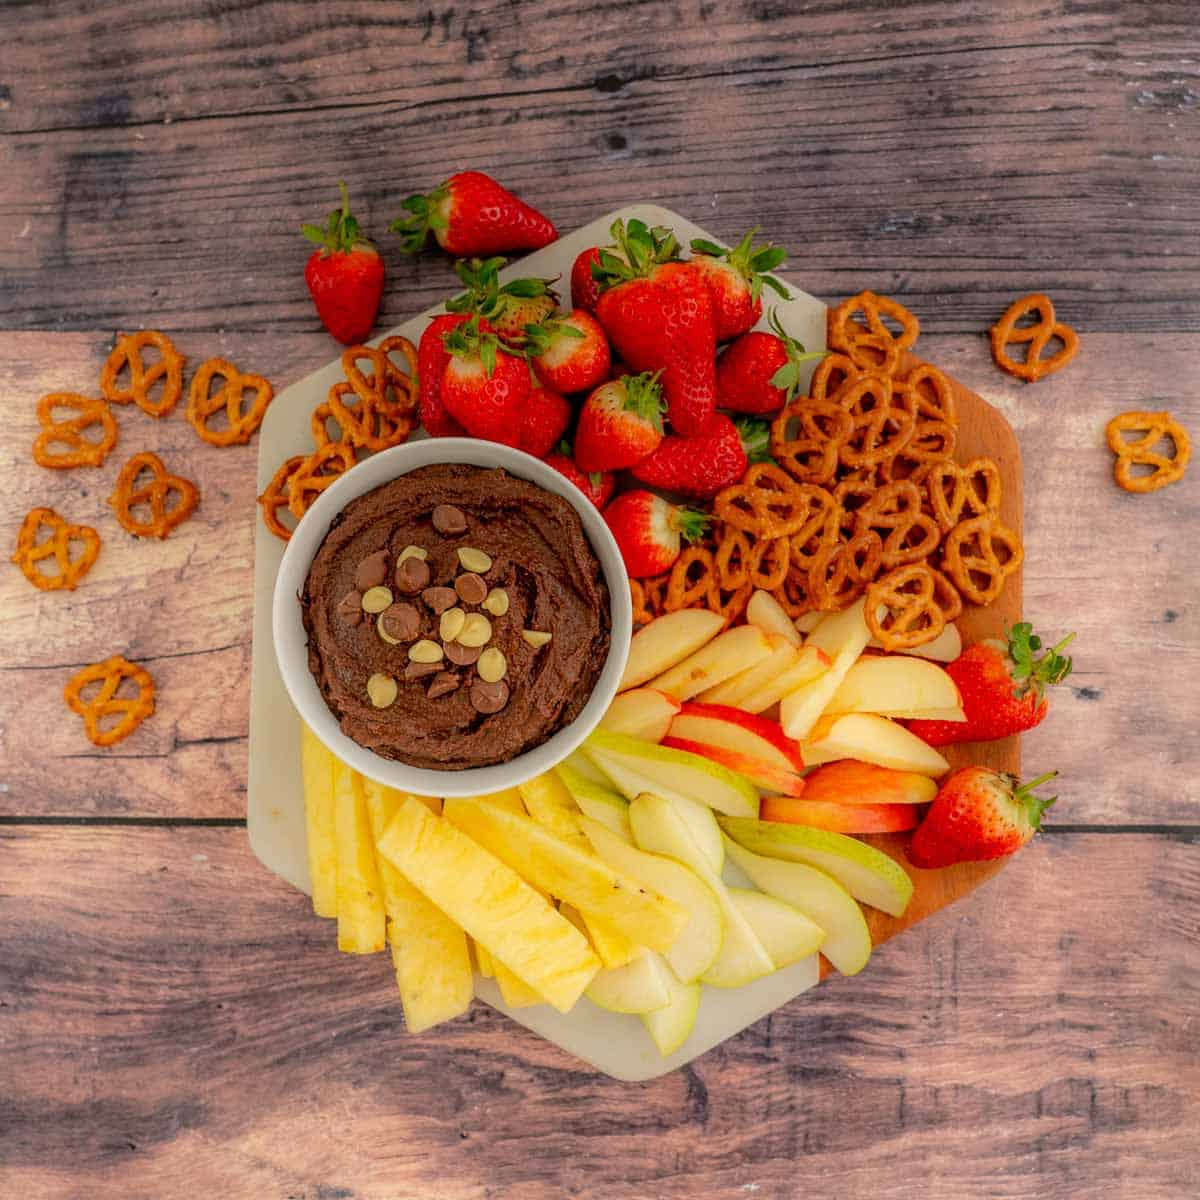 A platter of fresh fruit and pretzels with a bowl of chocolate hummus.